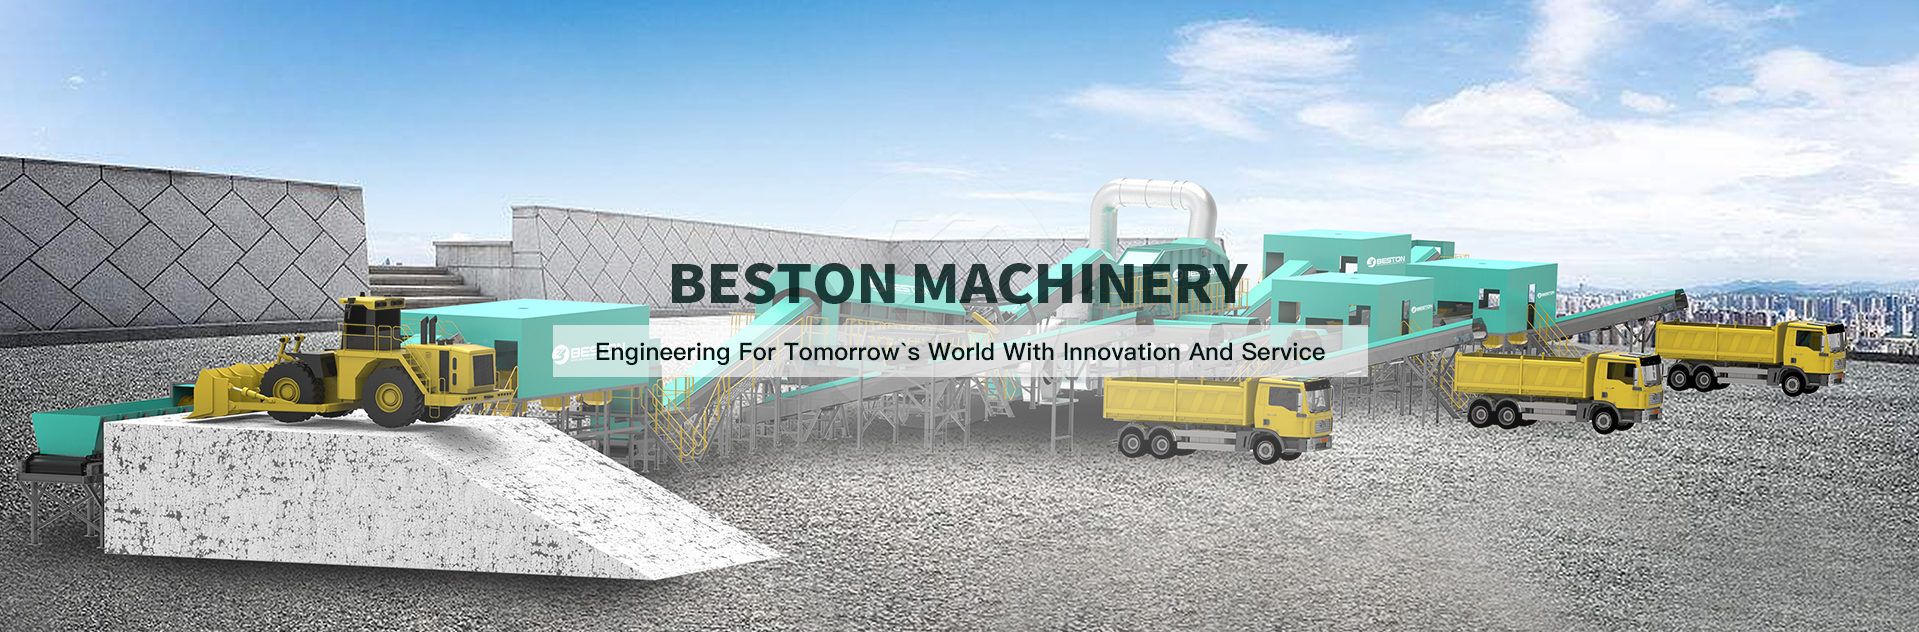 waste sorting machine banner